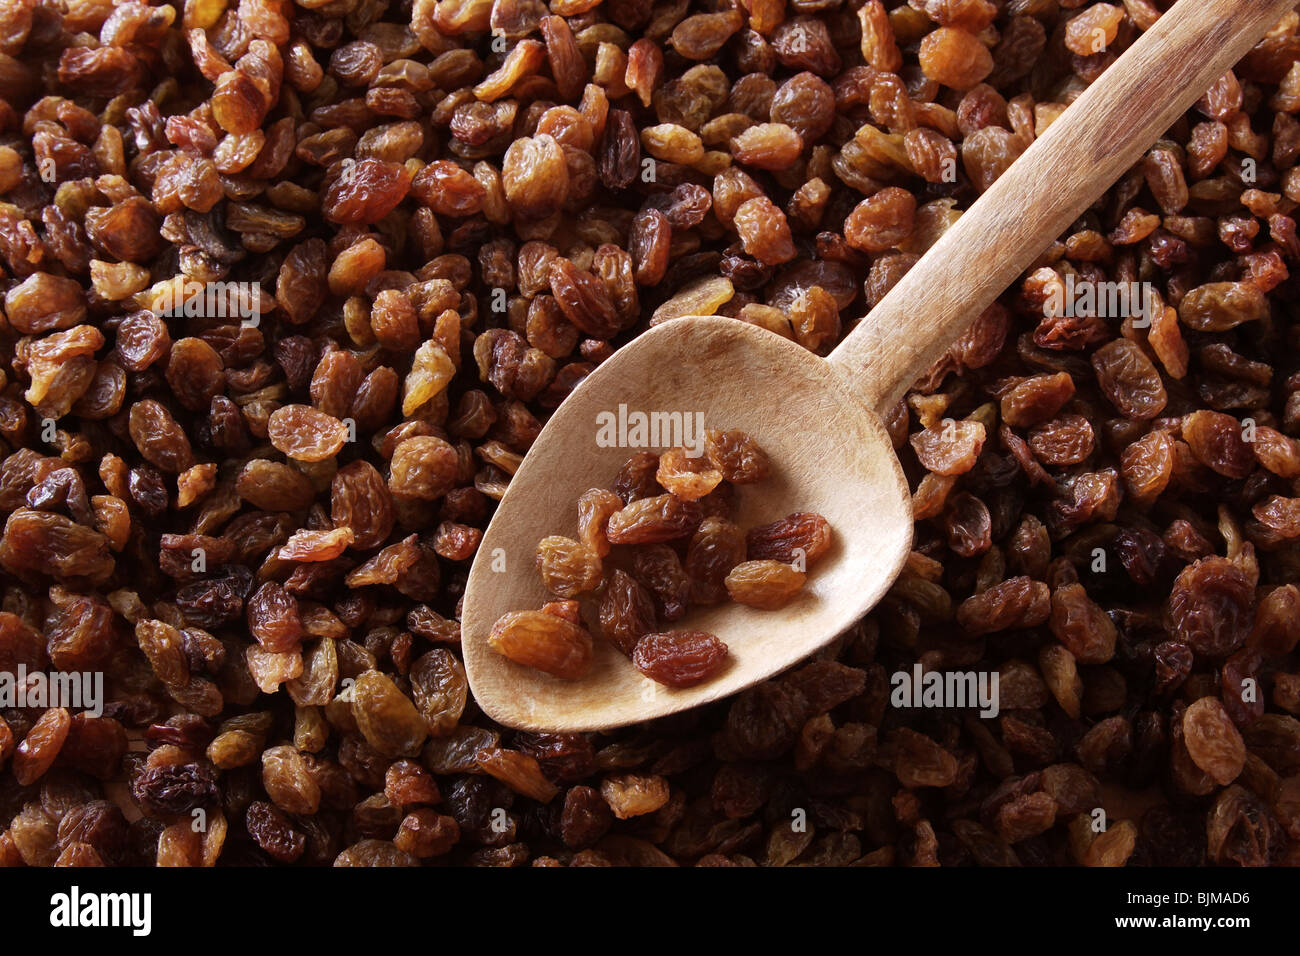 Dried raisins, sultanas, Thompson Seedless, with an old wooden spoon - Stock Image